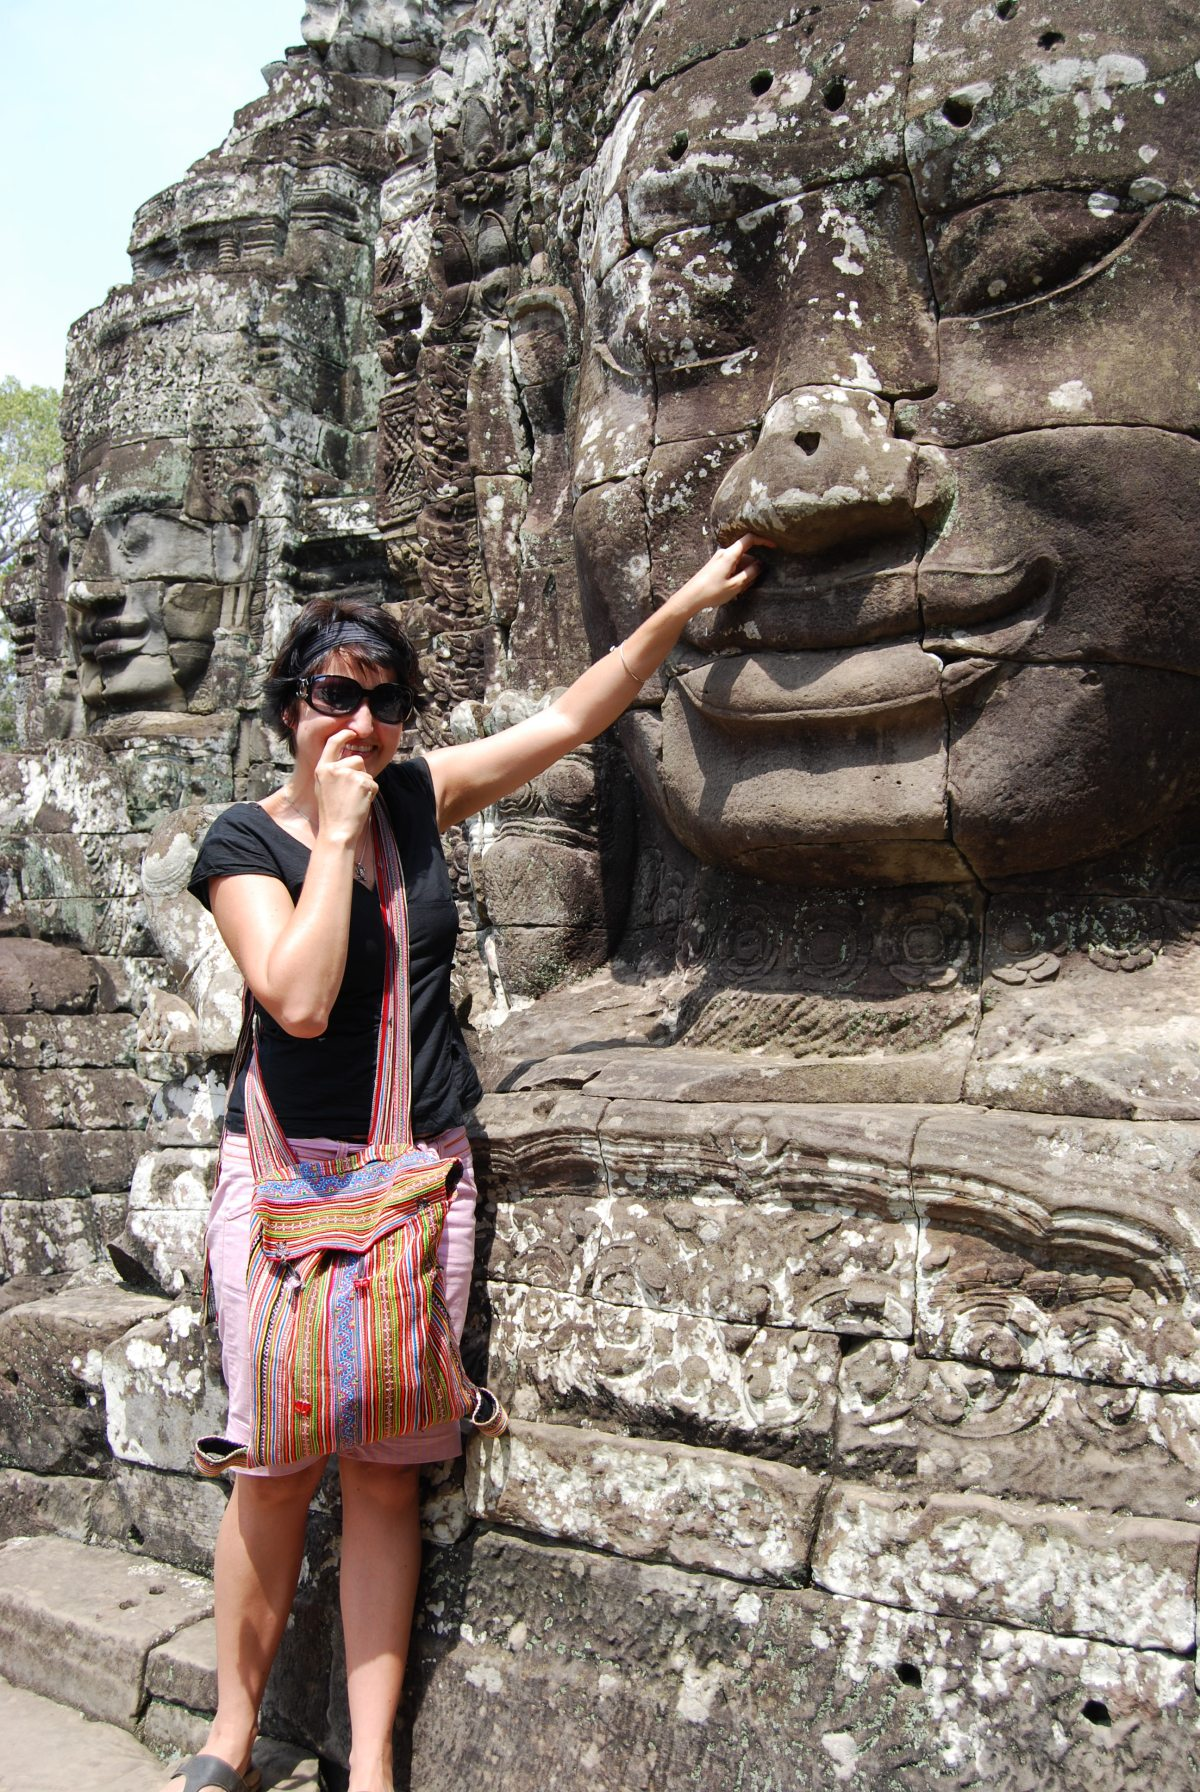 The Giant Smiling stone Faces of Bayon